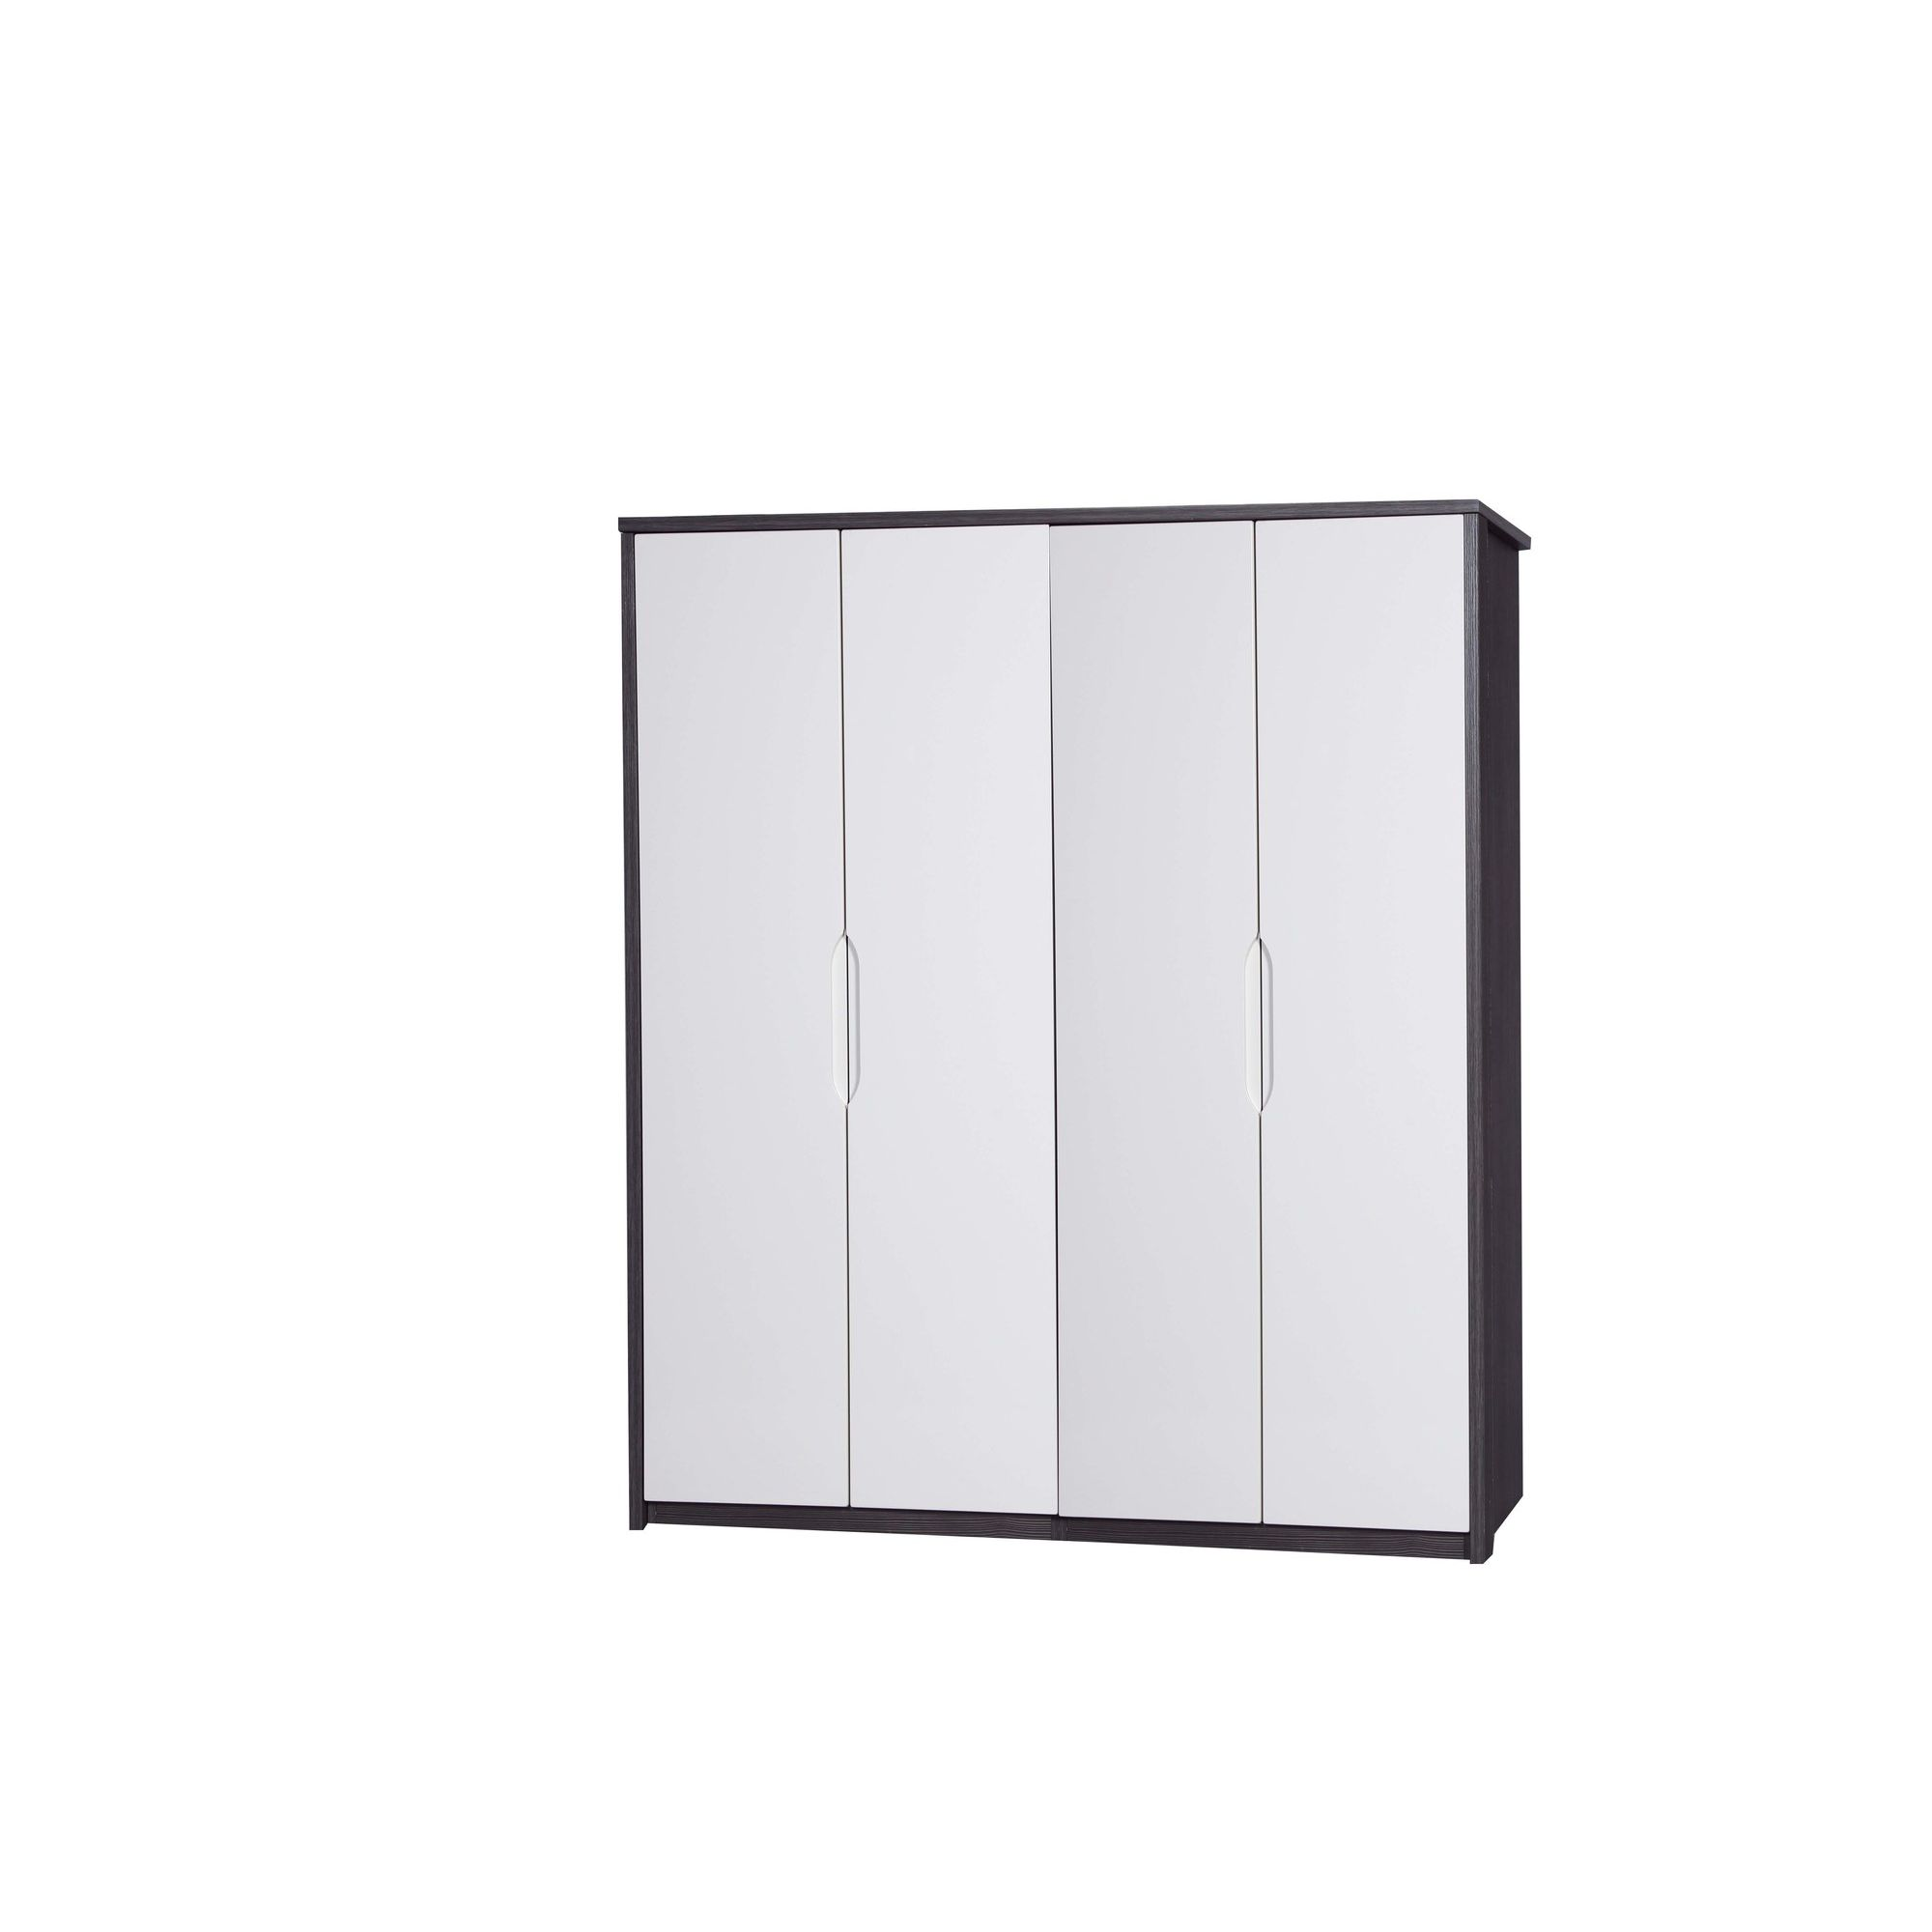 Alto Furniture Avola 4 Door Wardrobe - Grey Avola Carcass With Cream Gloss at Tesco Direct